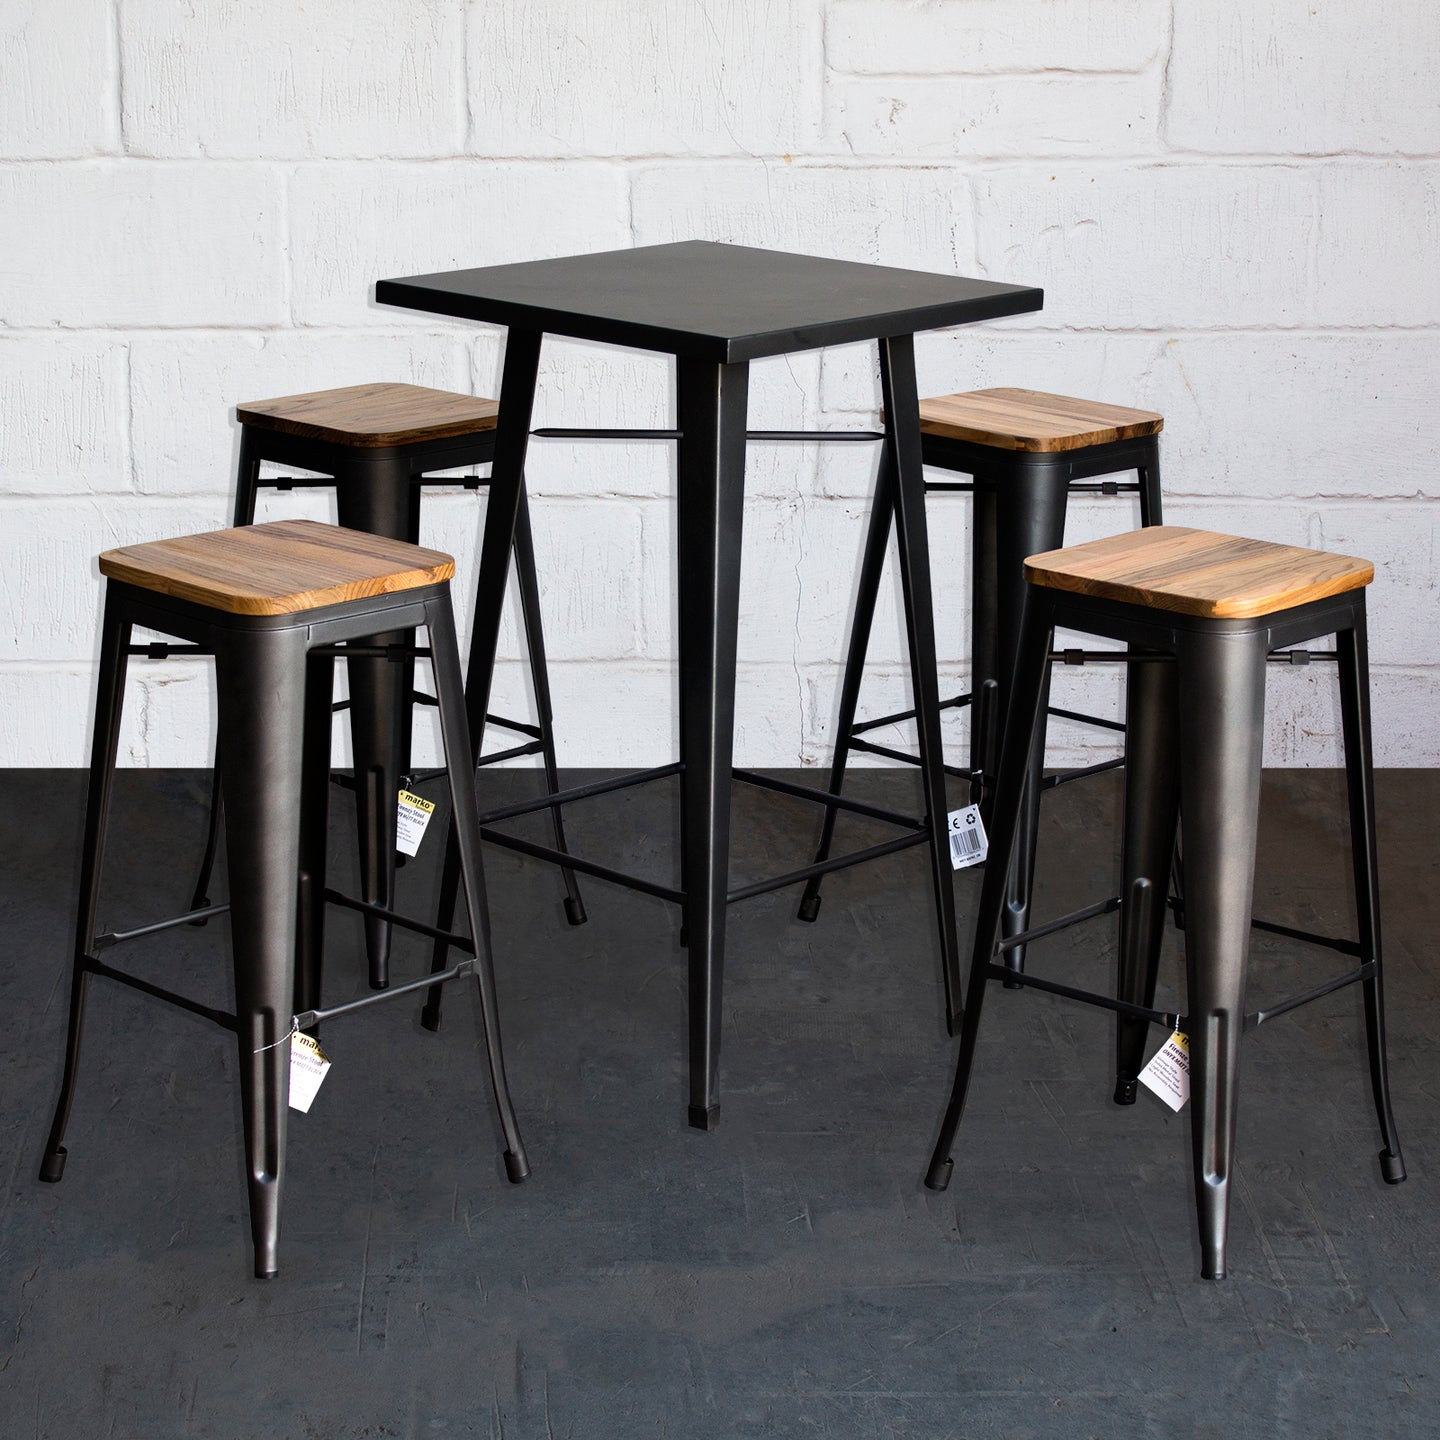 5PC Laus Table & Firenze Bar Stool Set - Onyx Matt Black